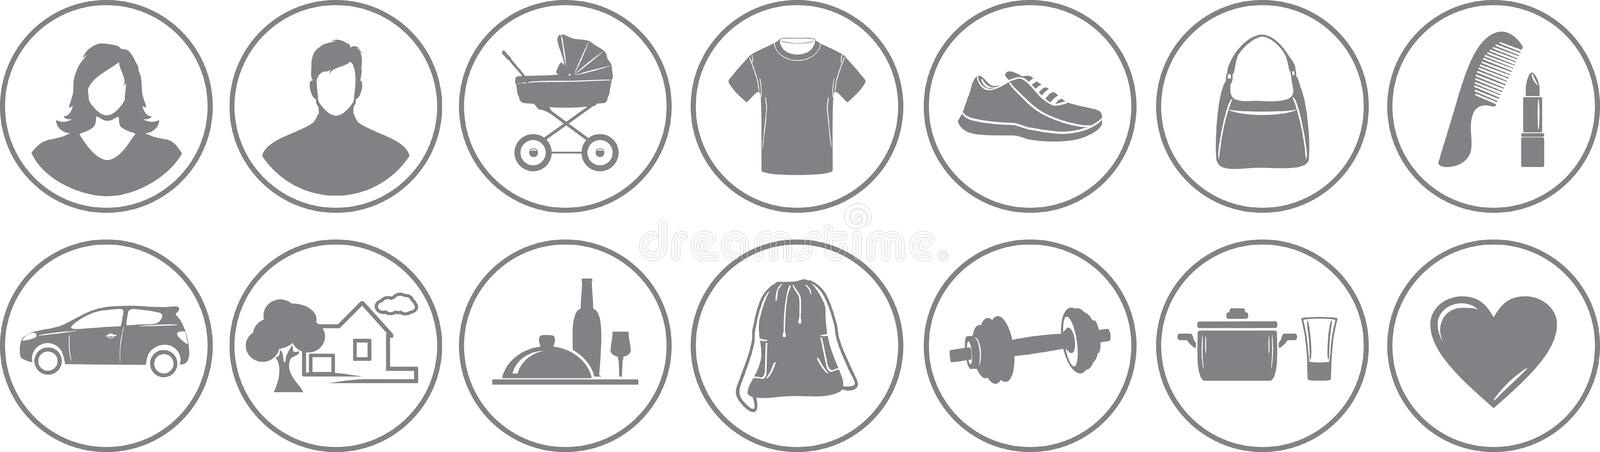 Fourteen service icons for online store stock images